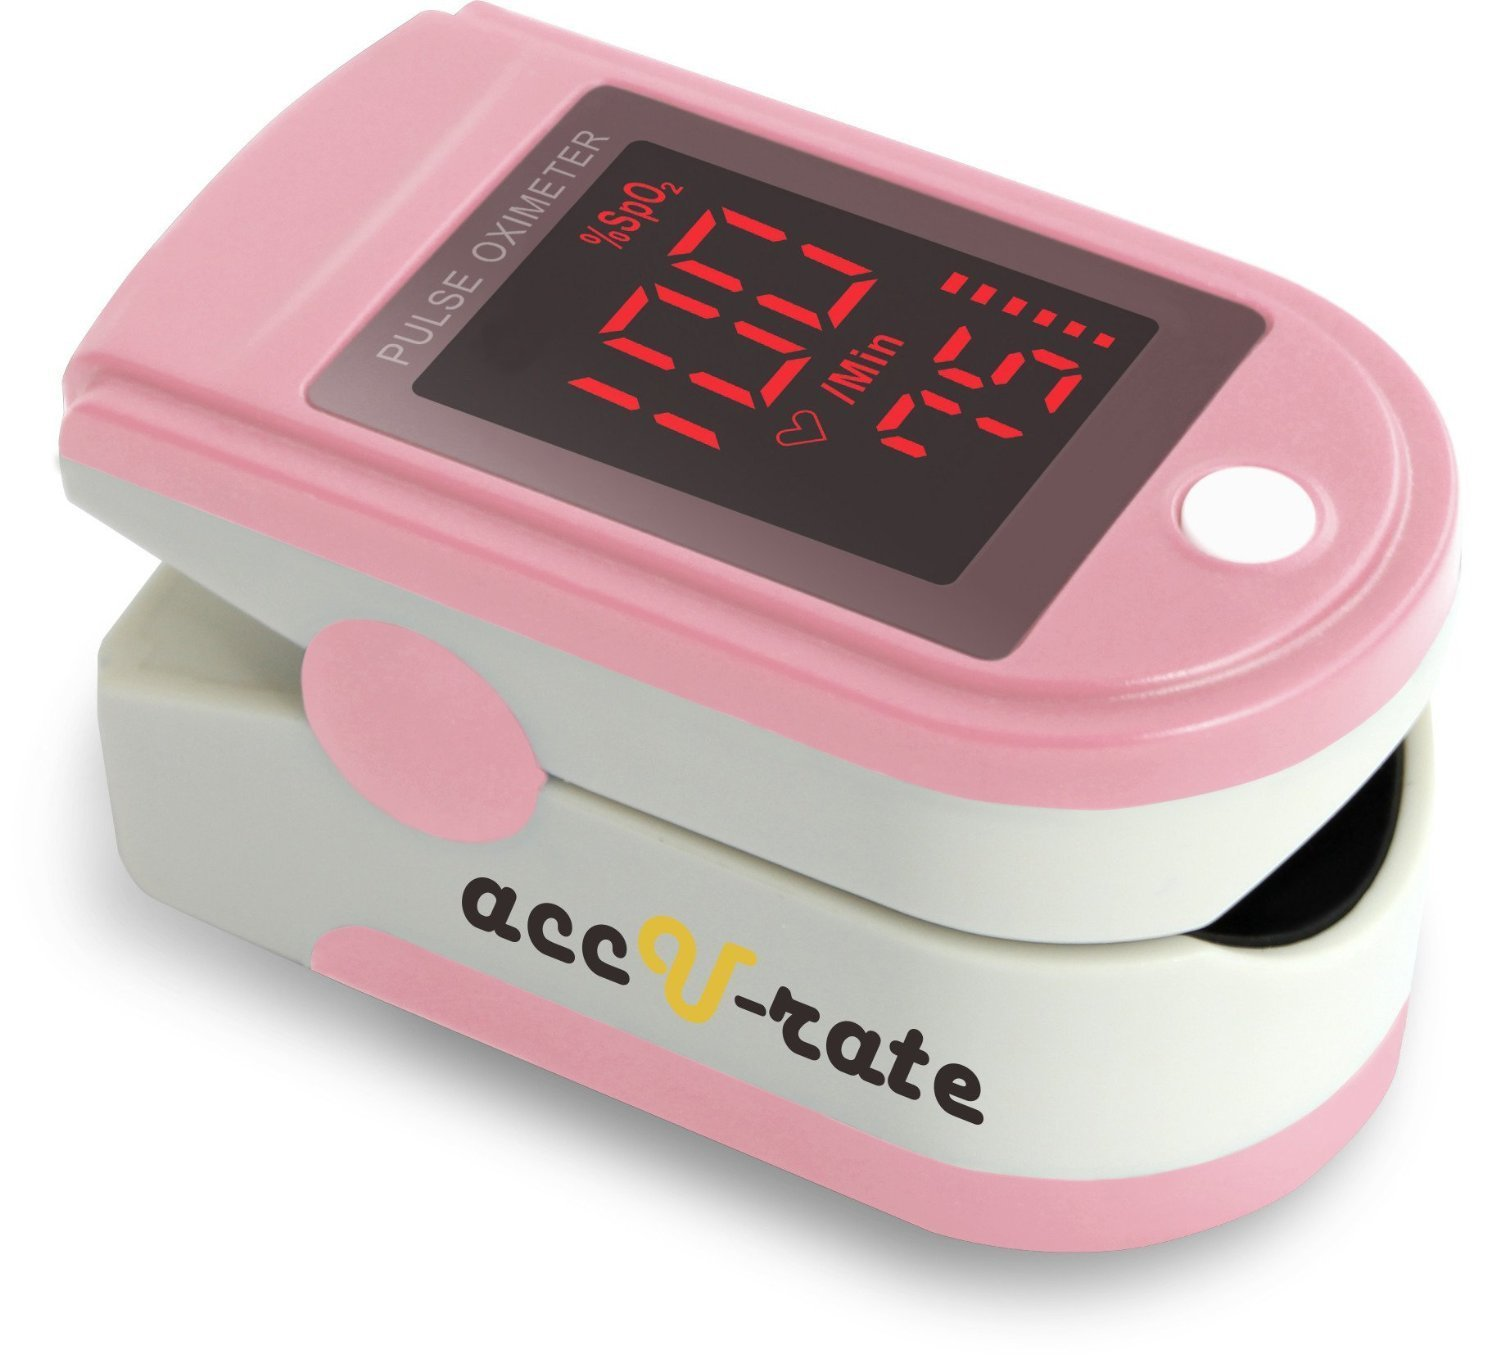 Pro Series 500DL Fingertip Pulse Oximeter Blood Oxygen Saturation Monitor with silicon cover, batteries and lanyard, Blushing Pink